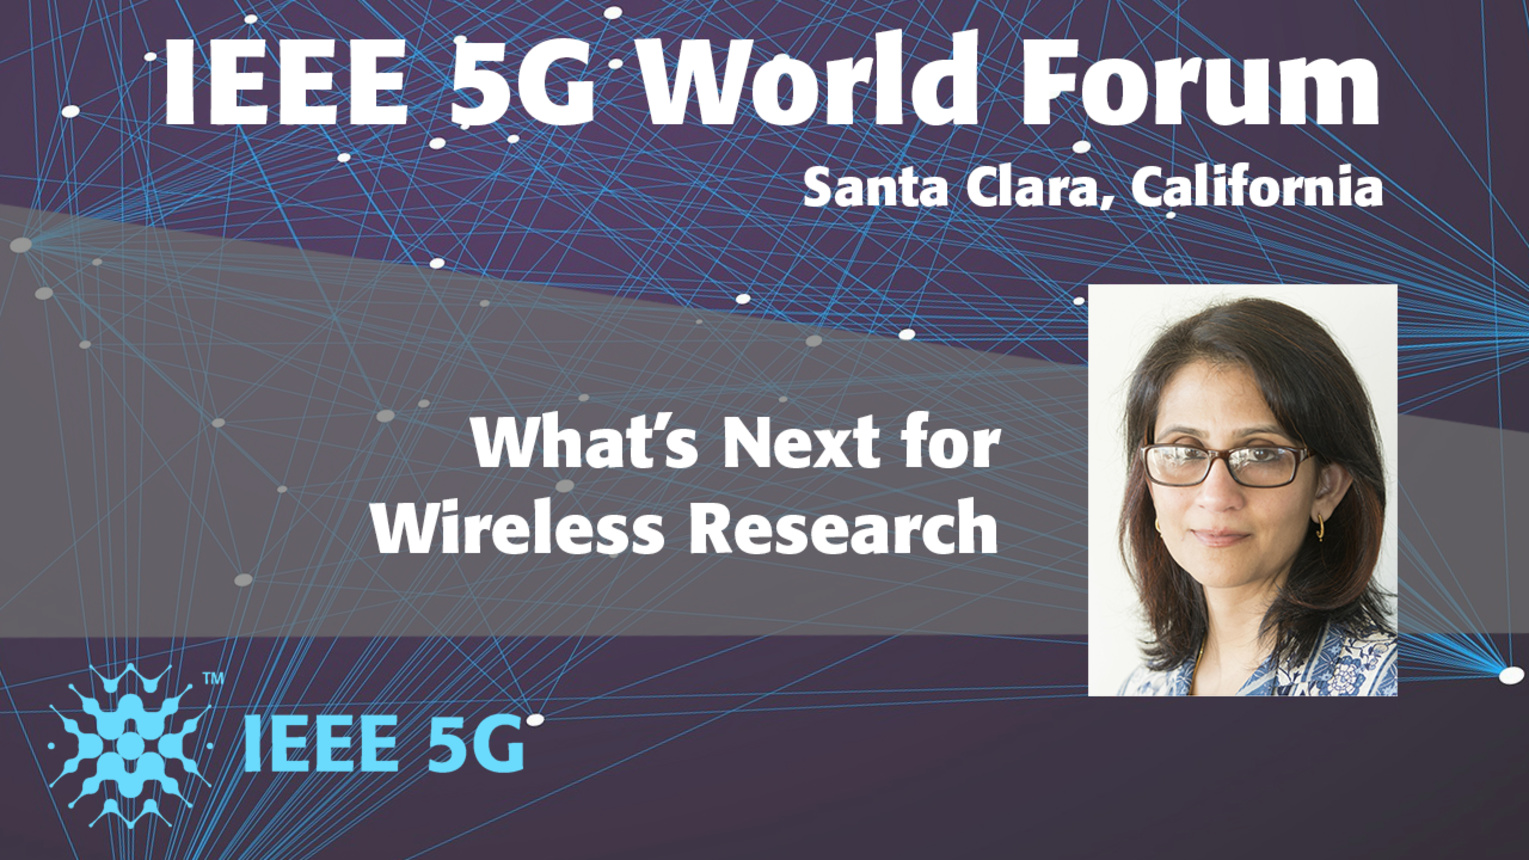 What's Next for Wireless Research - Monisha Ghosh - 5G World Forum Santa Clara 2018